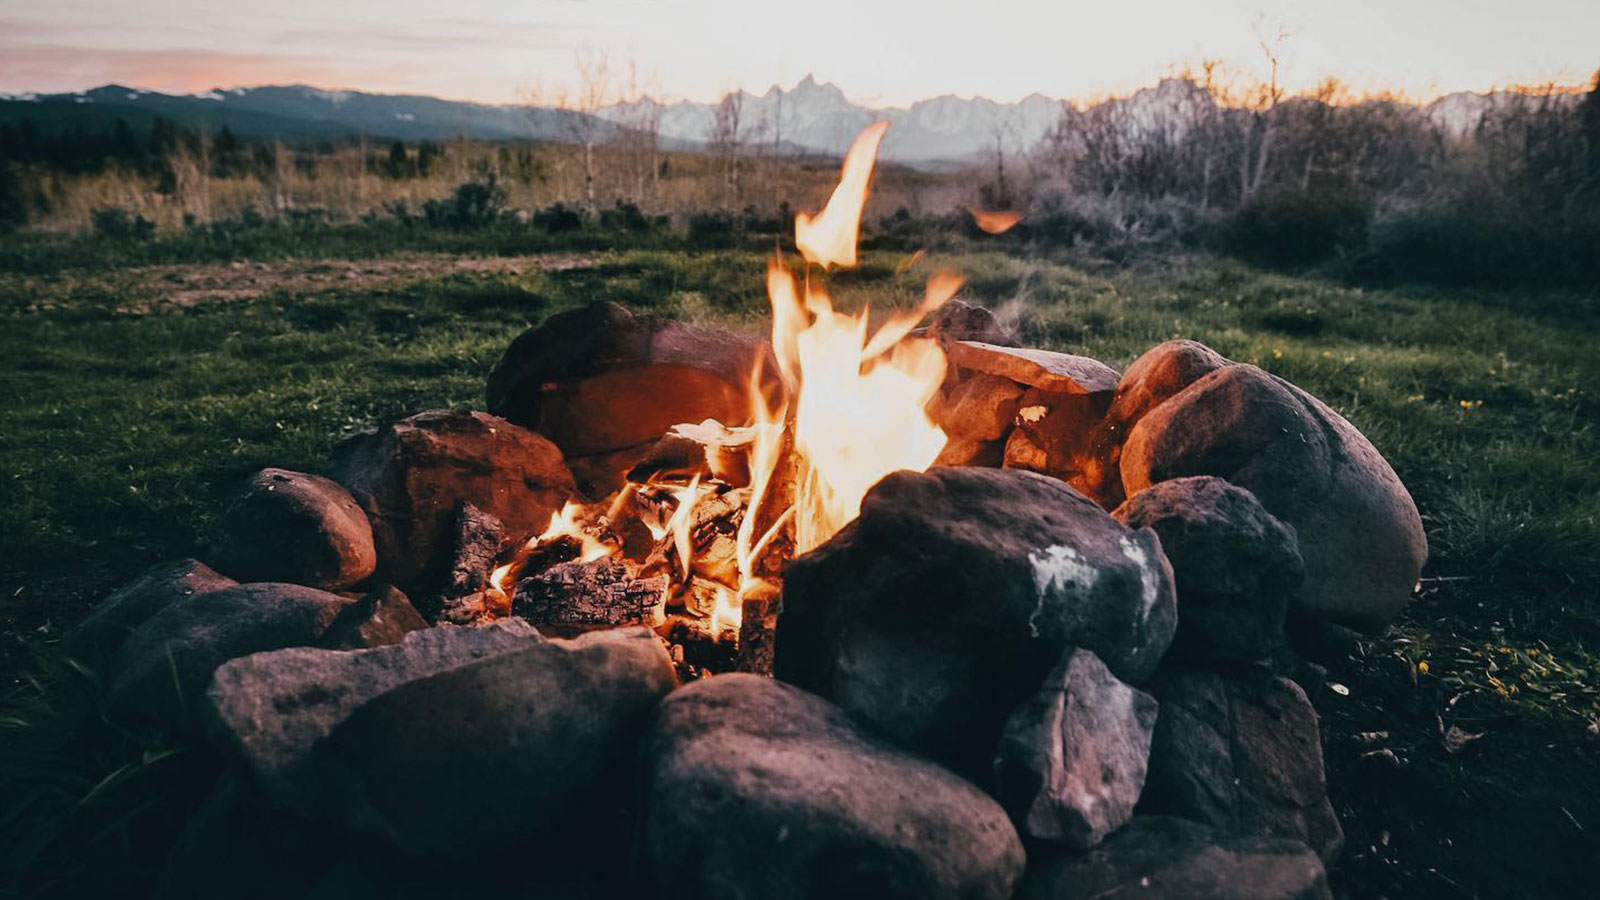 Crackling fire in a clearing.